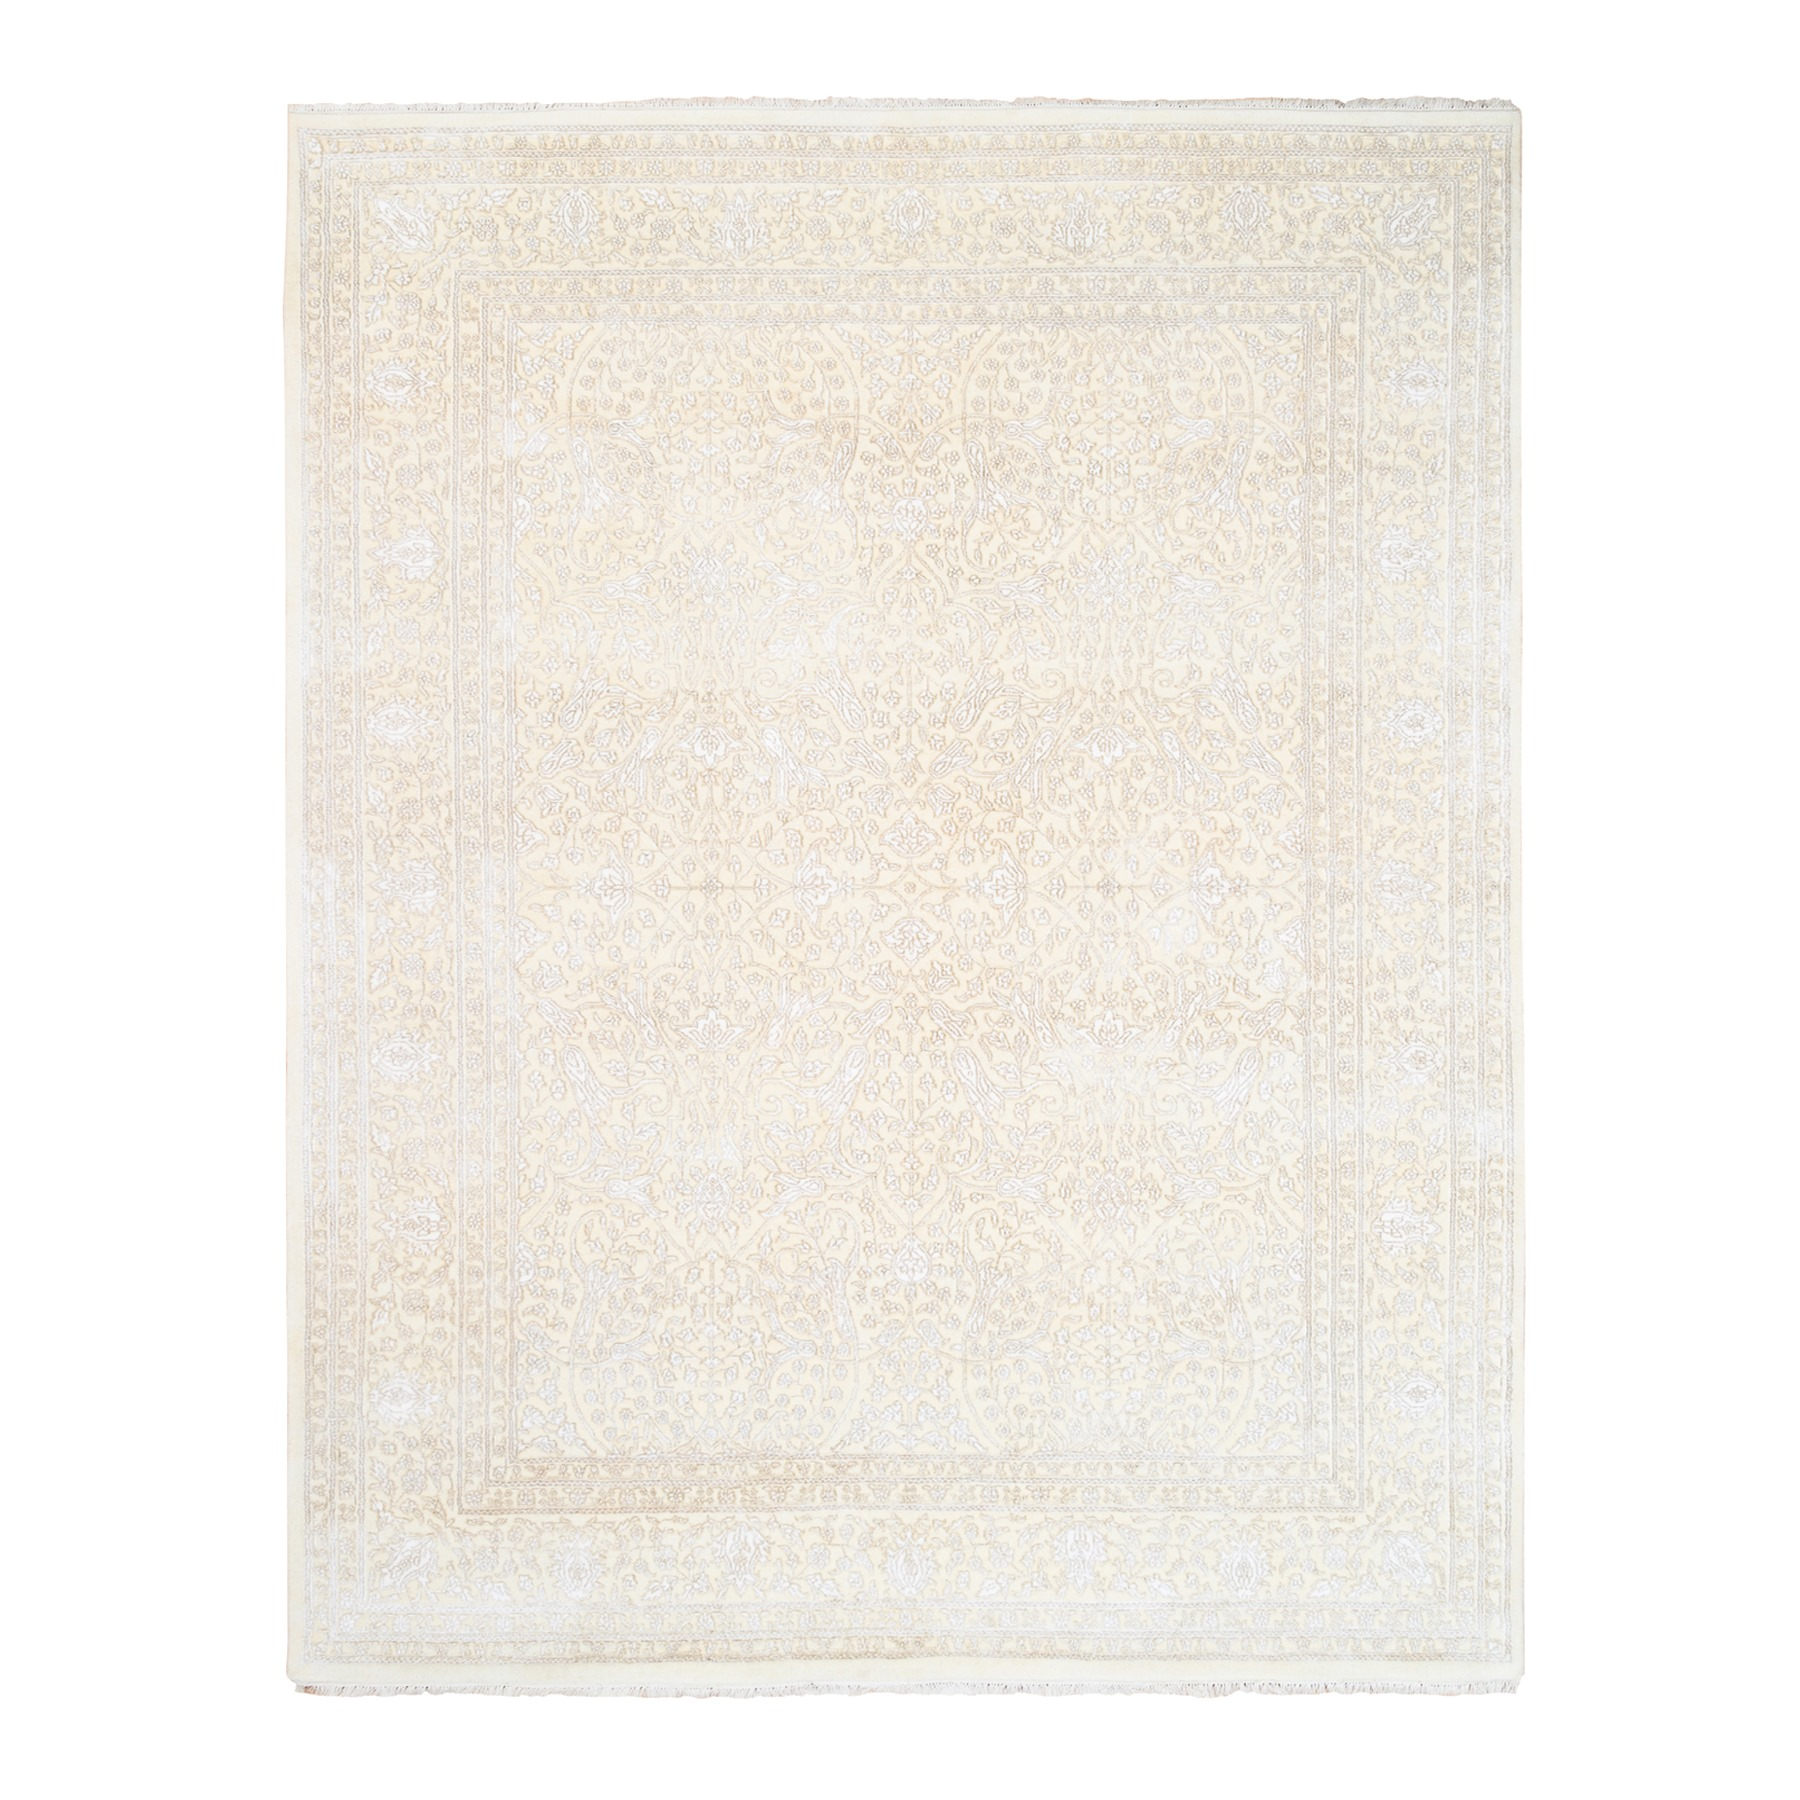 Traditional Rugs LUV560205